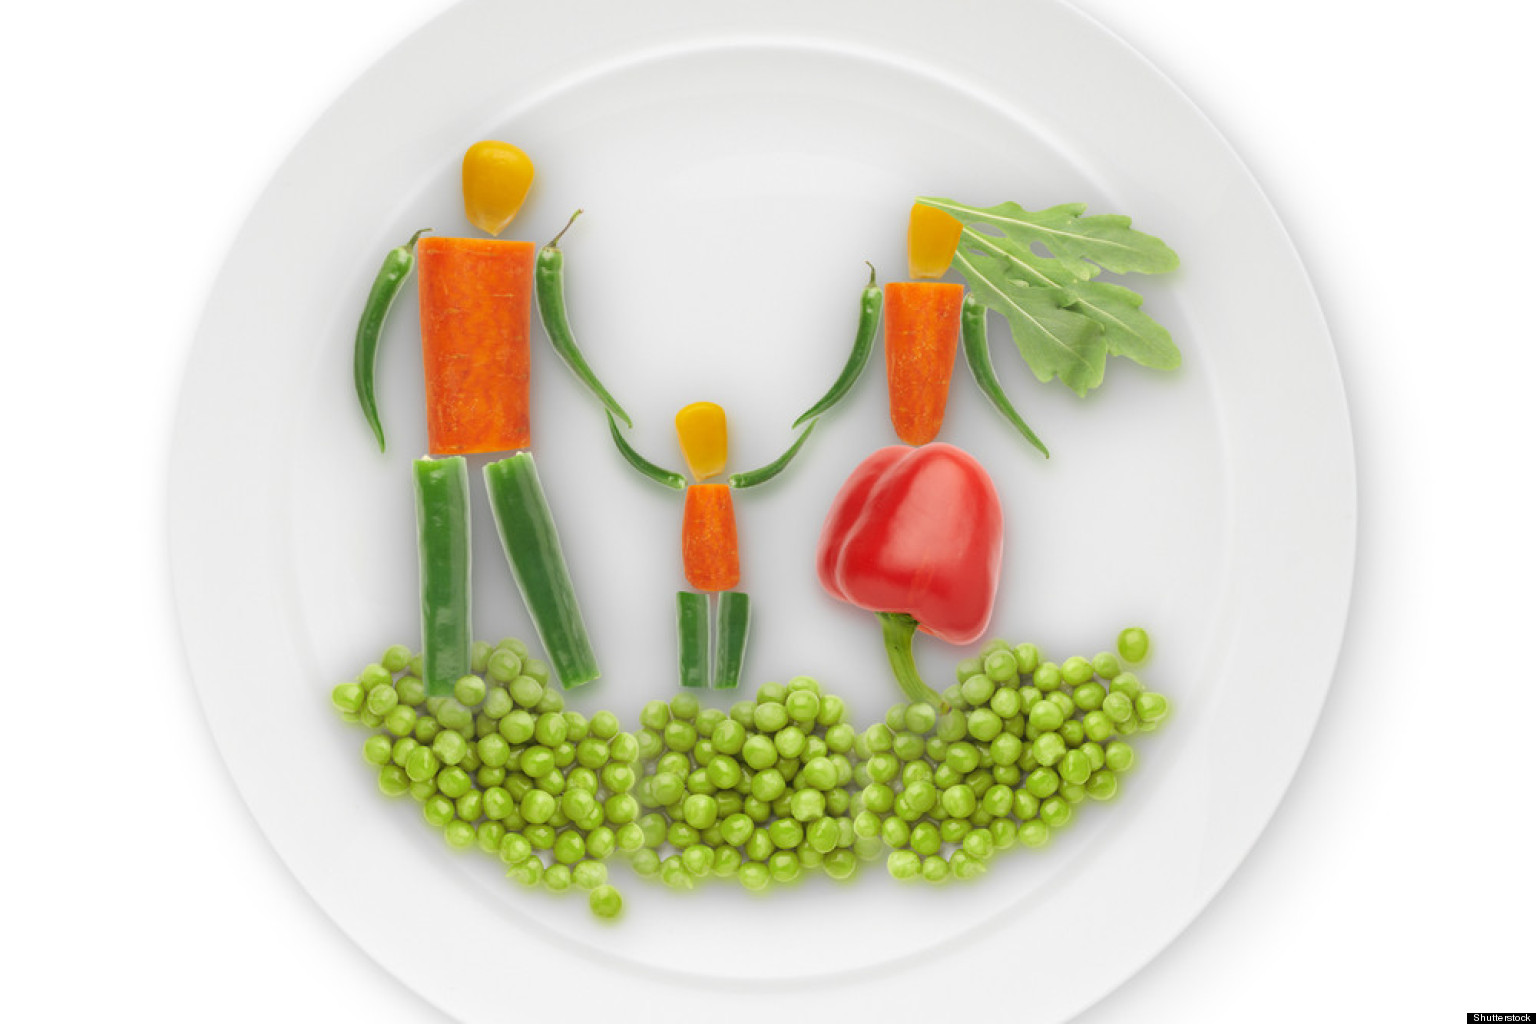 What are the benefits of vegetarianism?